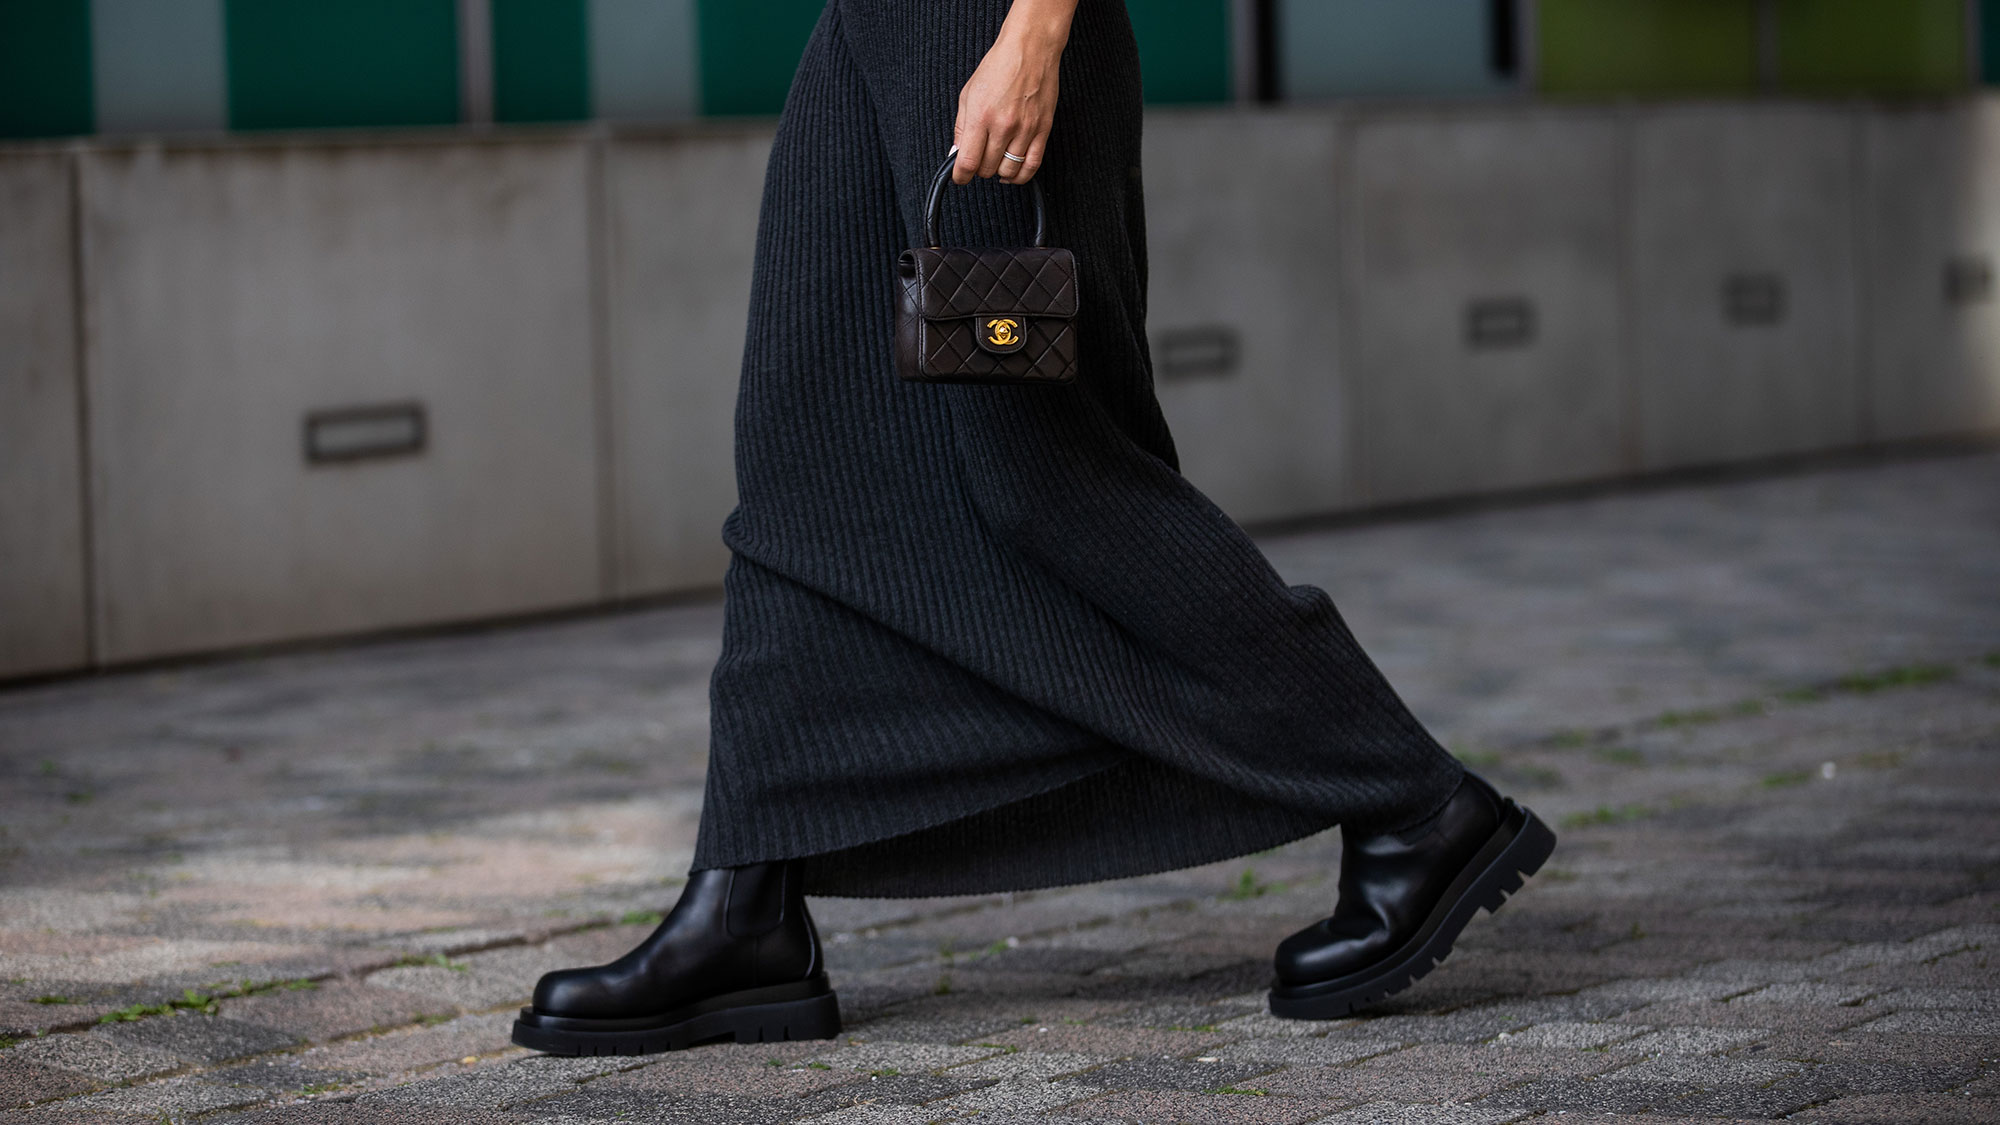 Here are some fabulous ankle boots to switch up your shoe game